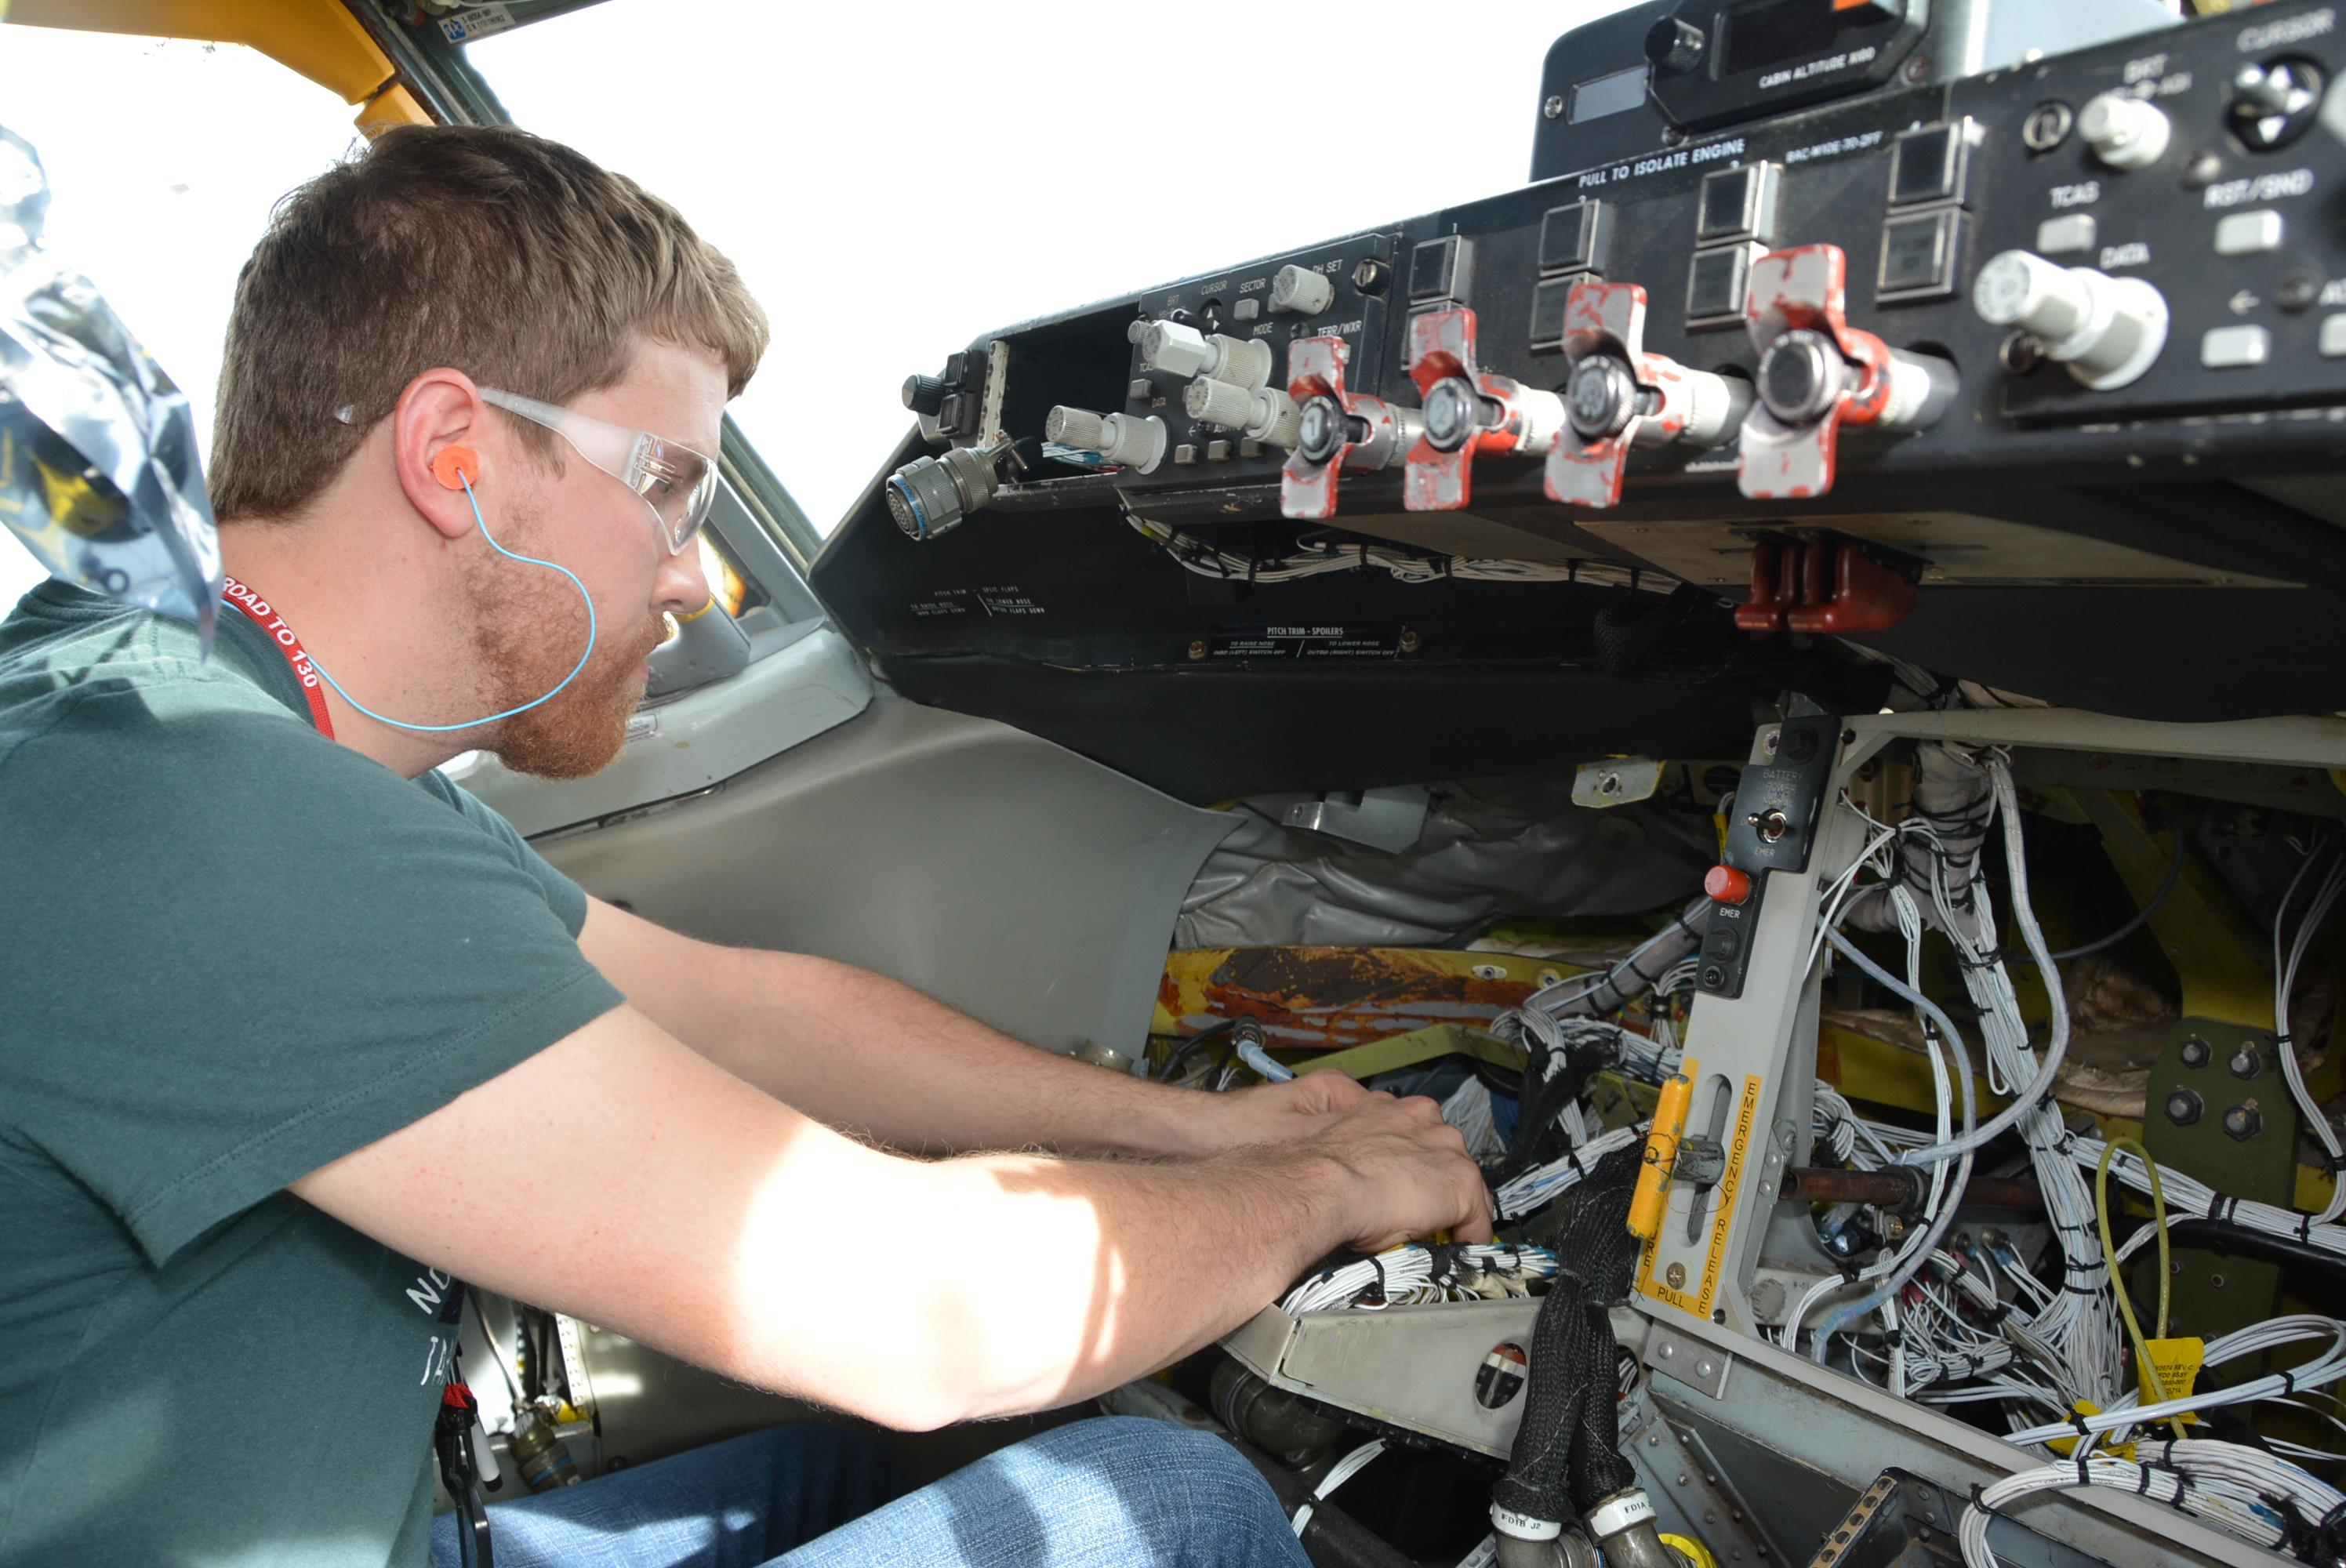 Photos Crystal Electrical Wiring Michael Johnson An Electrician With The 564th Aircraft Maintenance Squadron Prepares For Installation Of